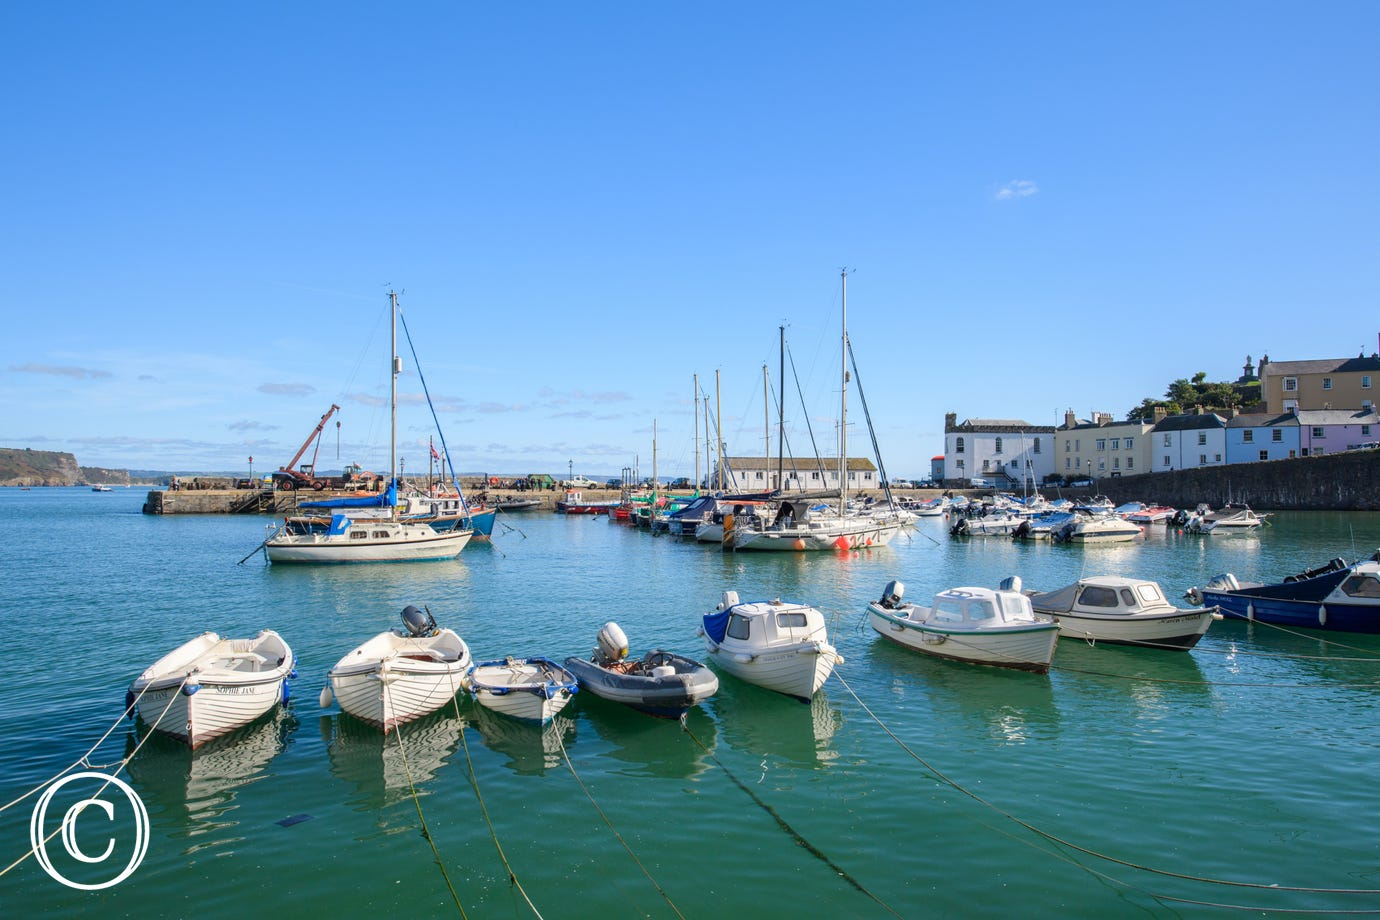 Tenby has a lovely harbour with fresh fish caught daily and Summer trips.